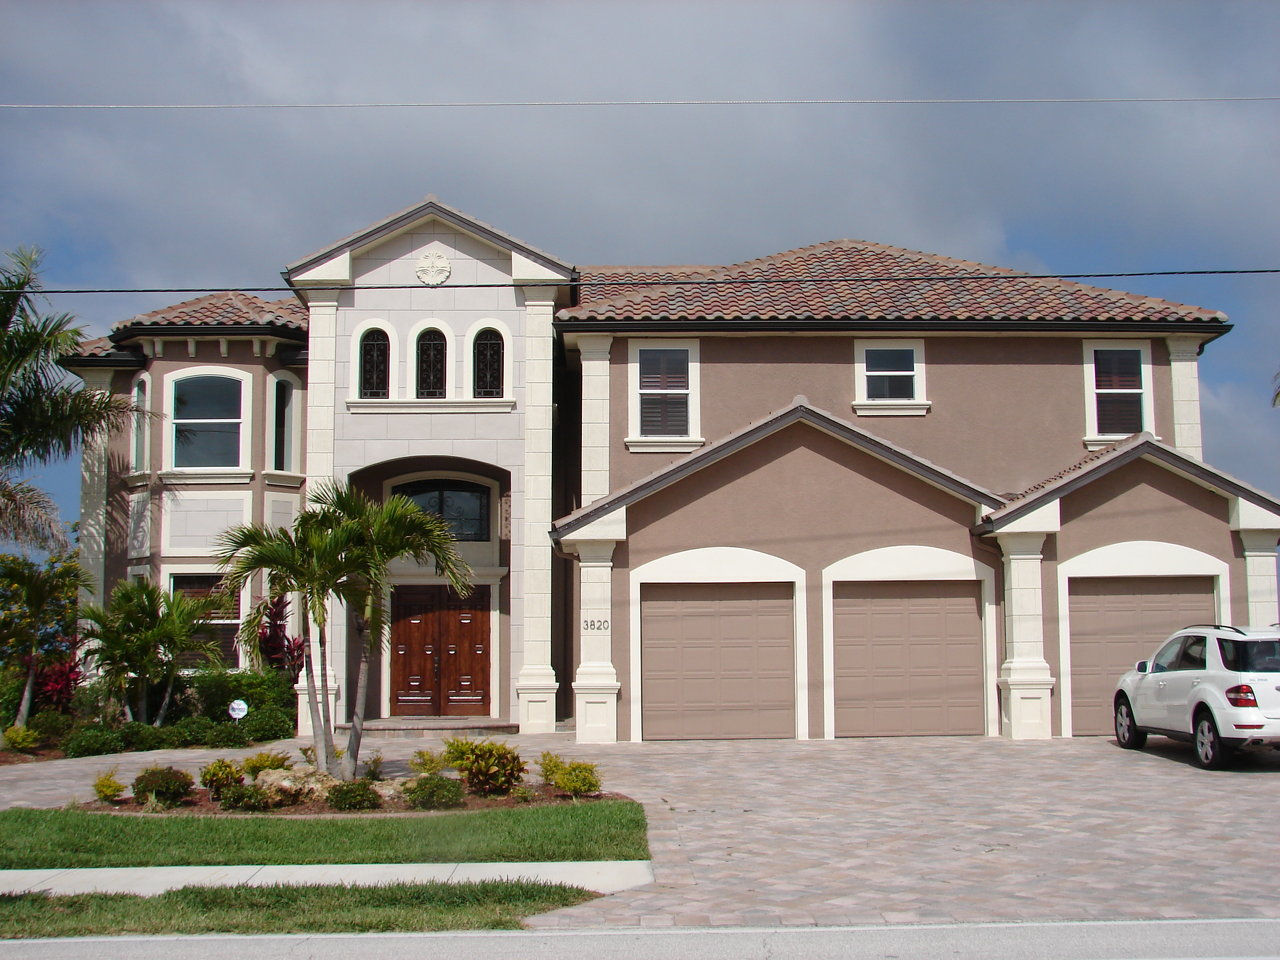 Southwest Floridas Leading Local Builder And Developer Of